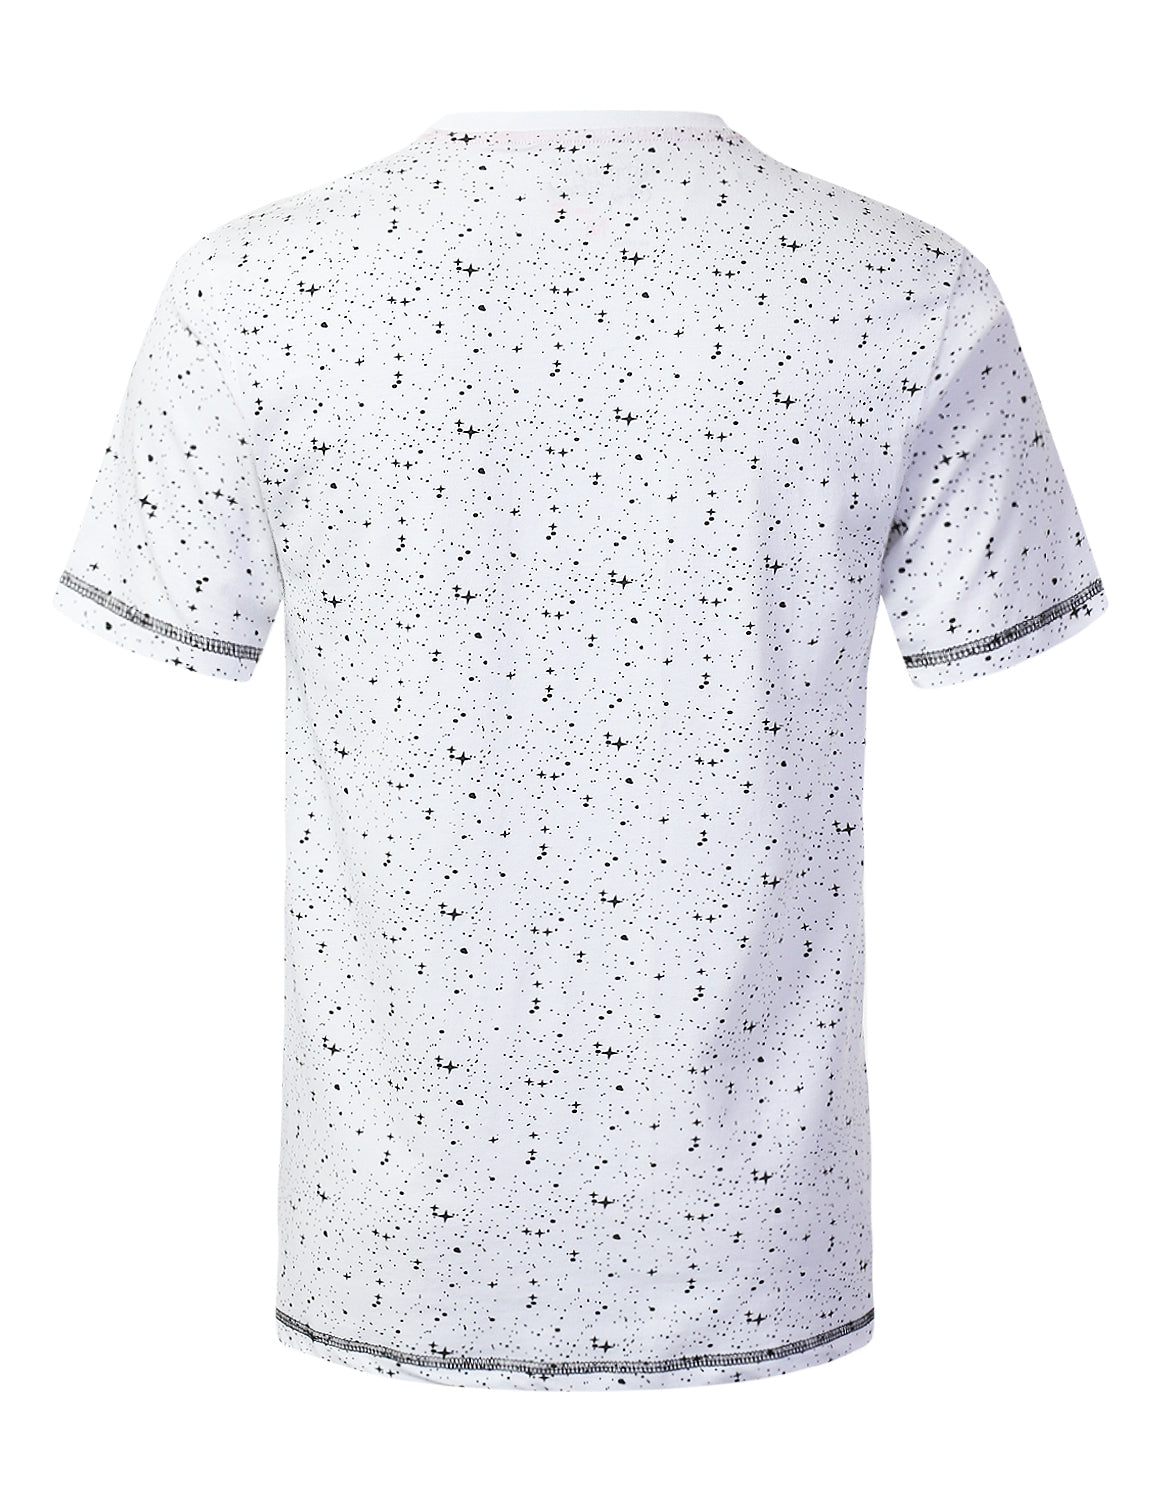 WHITE Moon Man Printed Pocket T-shirt - URBANCREWS